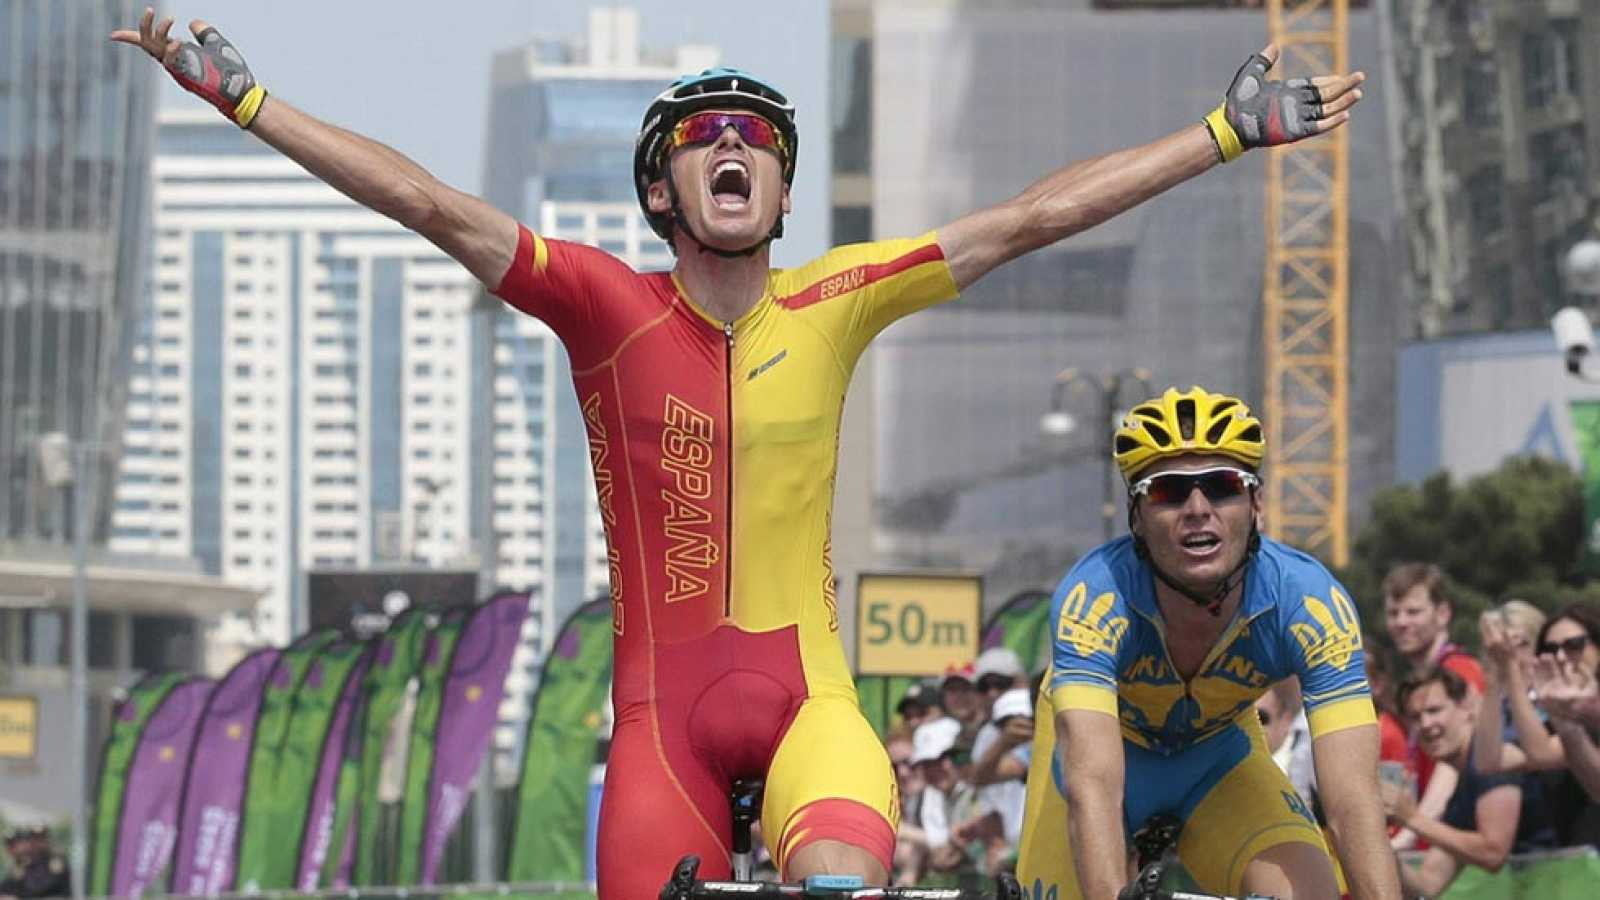 Luis León Sánchez celebrates victory in the men's cycling road race - one of eight European Games gold medals won by Spain at Baku 2015 as they finished 10th overall ©Getty Images